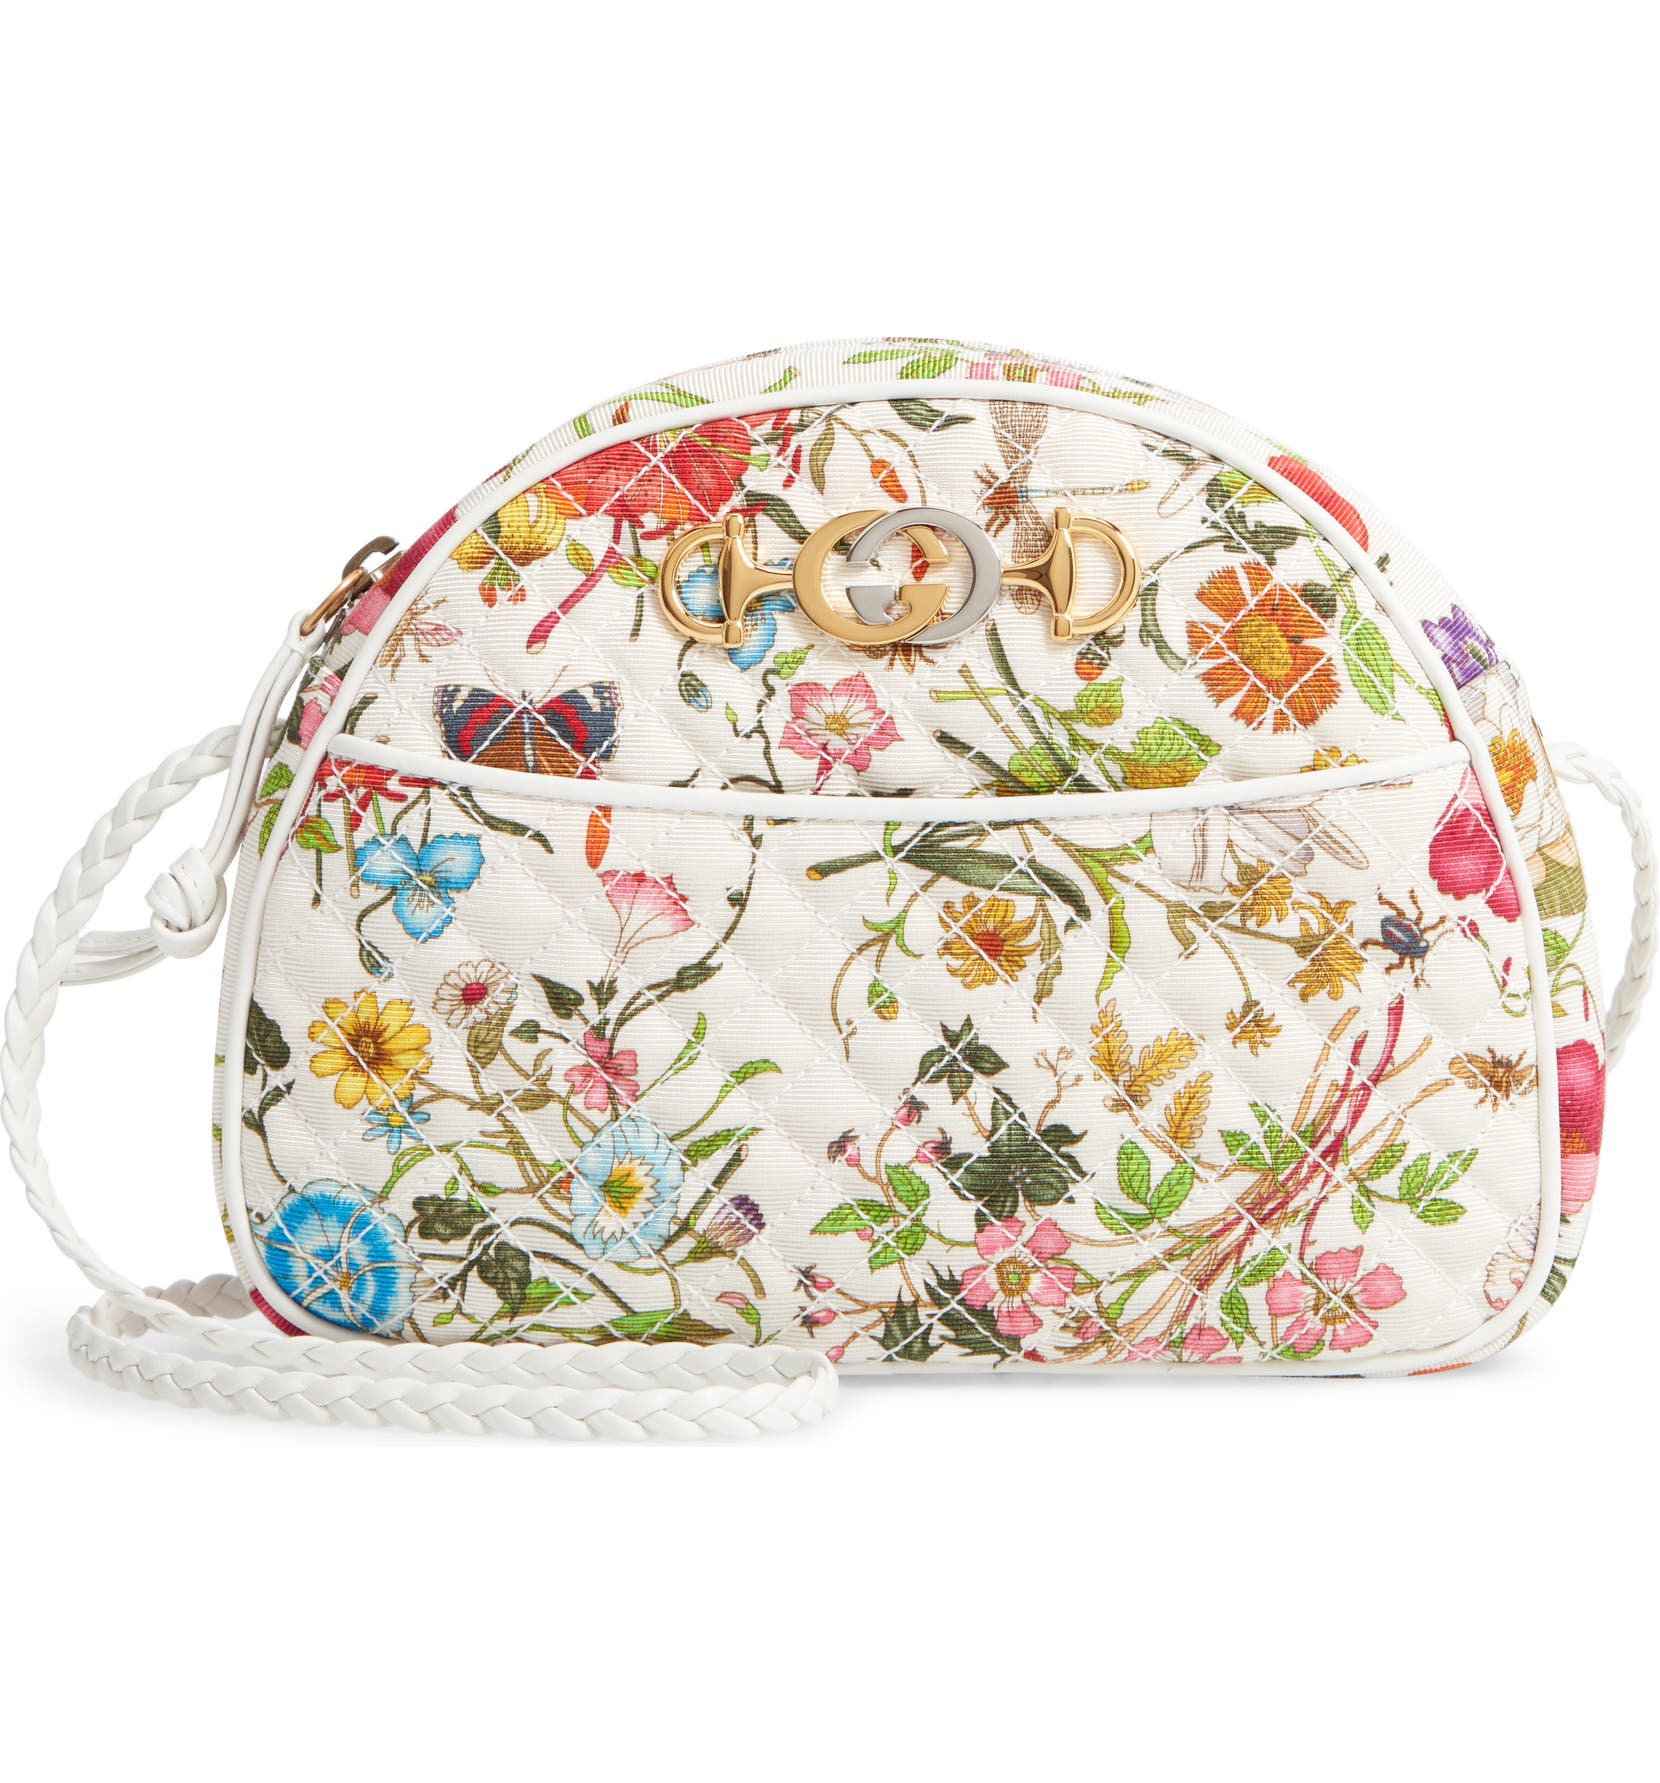 Gucci Small Trapuntata Floral Quilted Crossbody Bag  d383a7a586e20